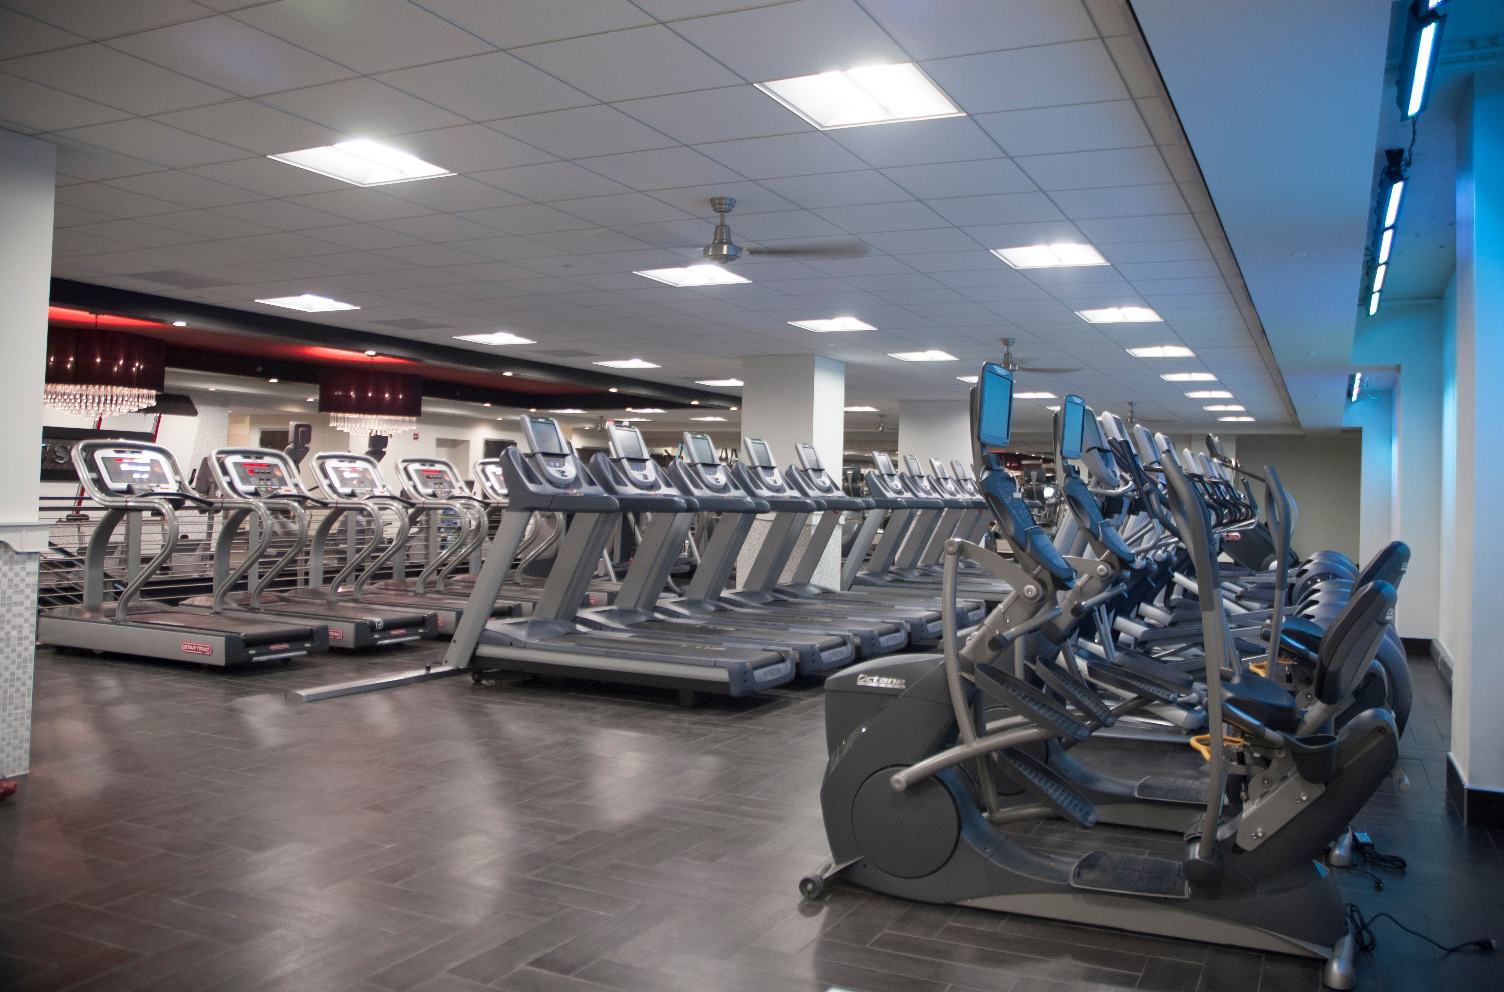 Crunch Fitness - Reston Town Center image 4